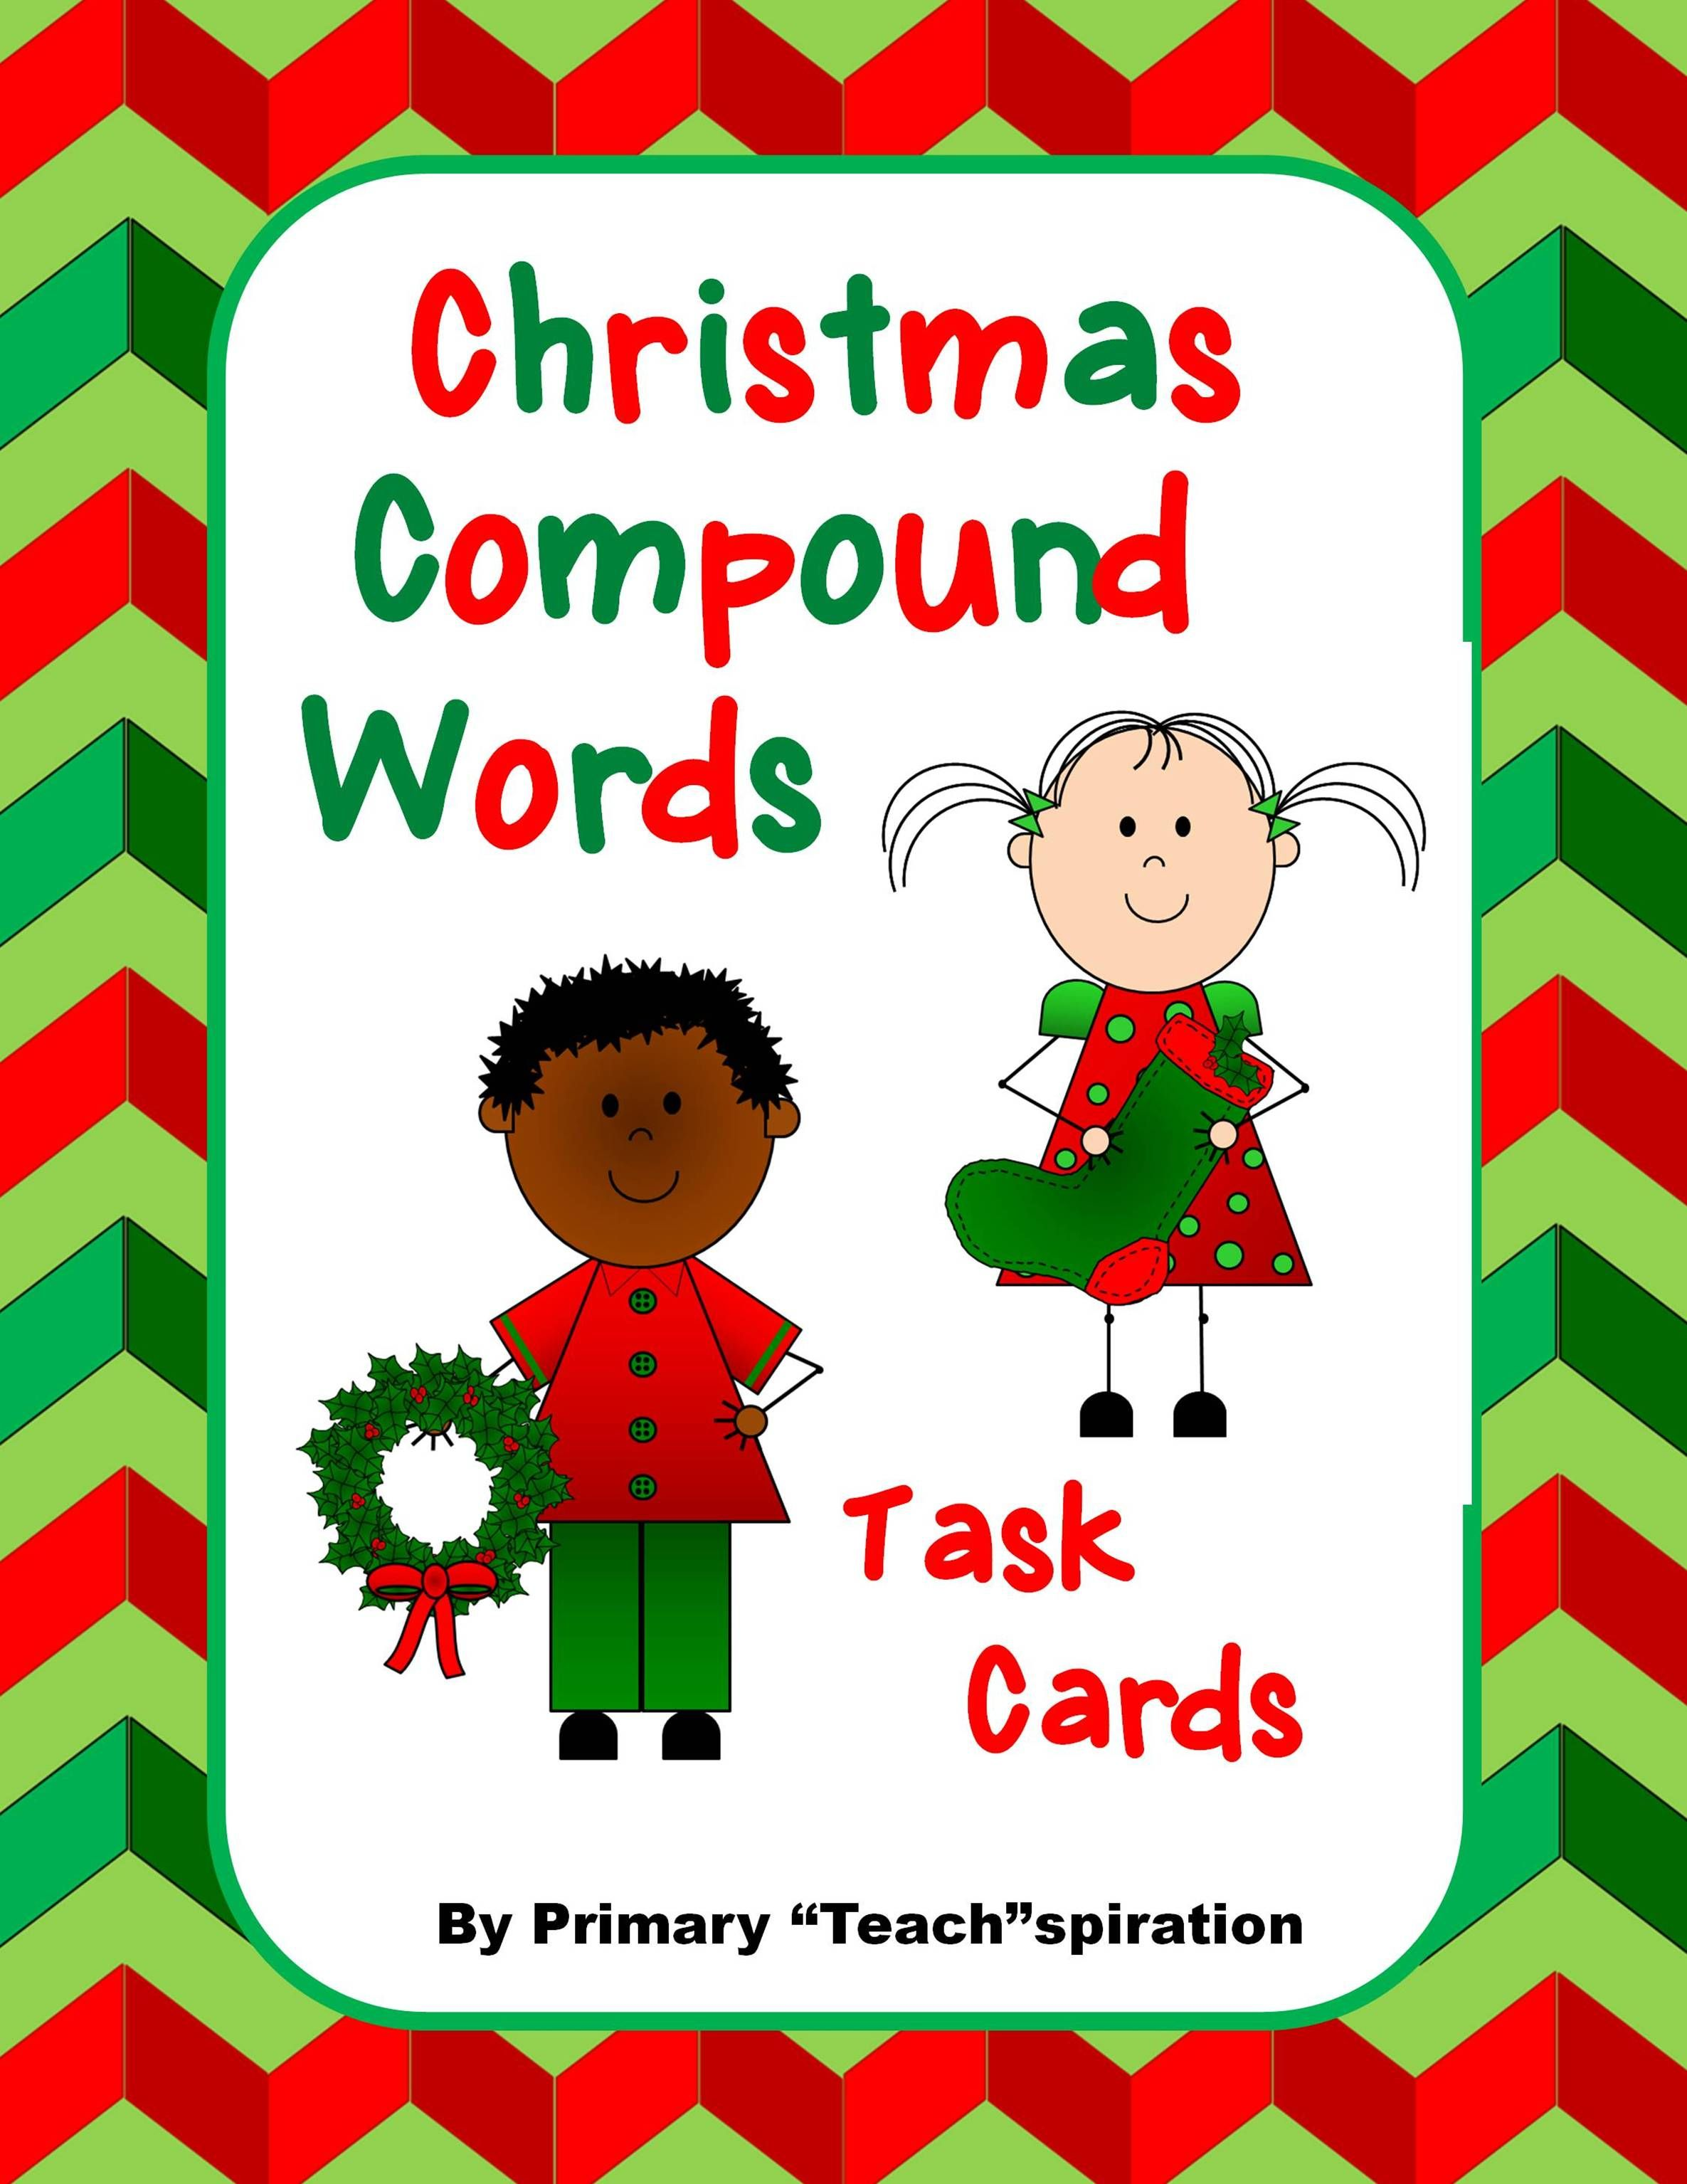 Compound Words Task Cards For Christmas